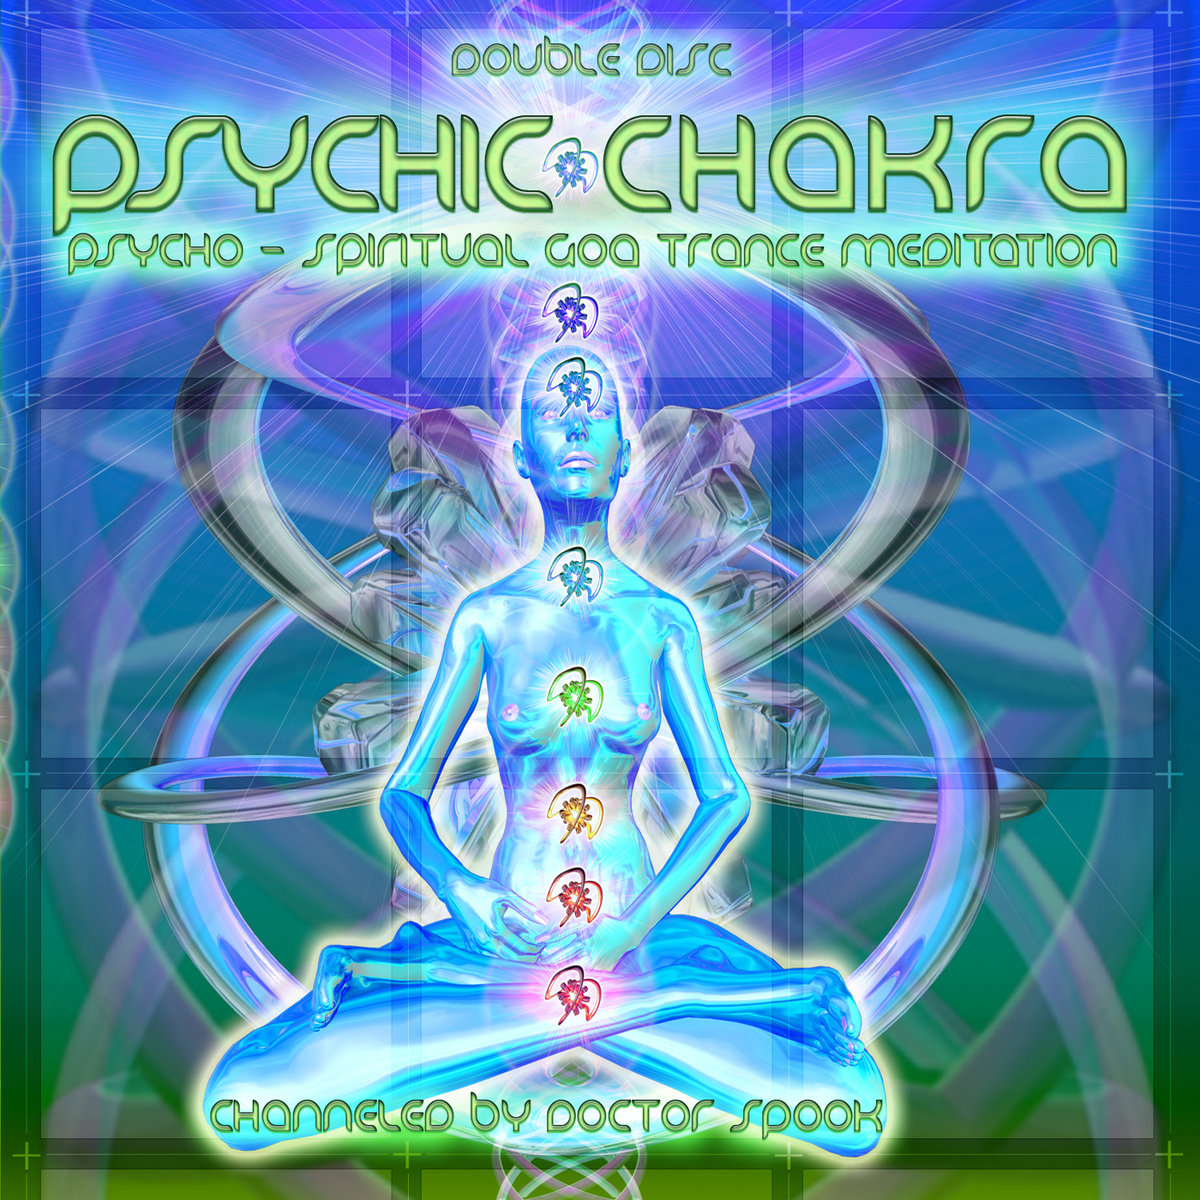 Digital Samsara - Space Kozak @ 'Various Artists - Psychic Chakra (Channeled by Dr. Spook)' album (electronic, psychic chakra)